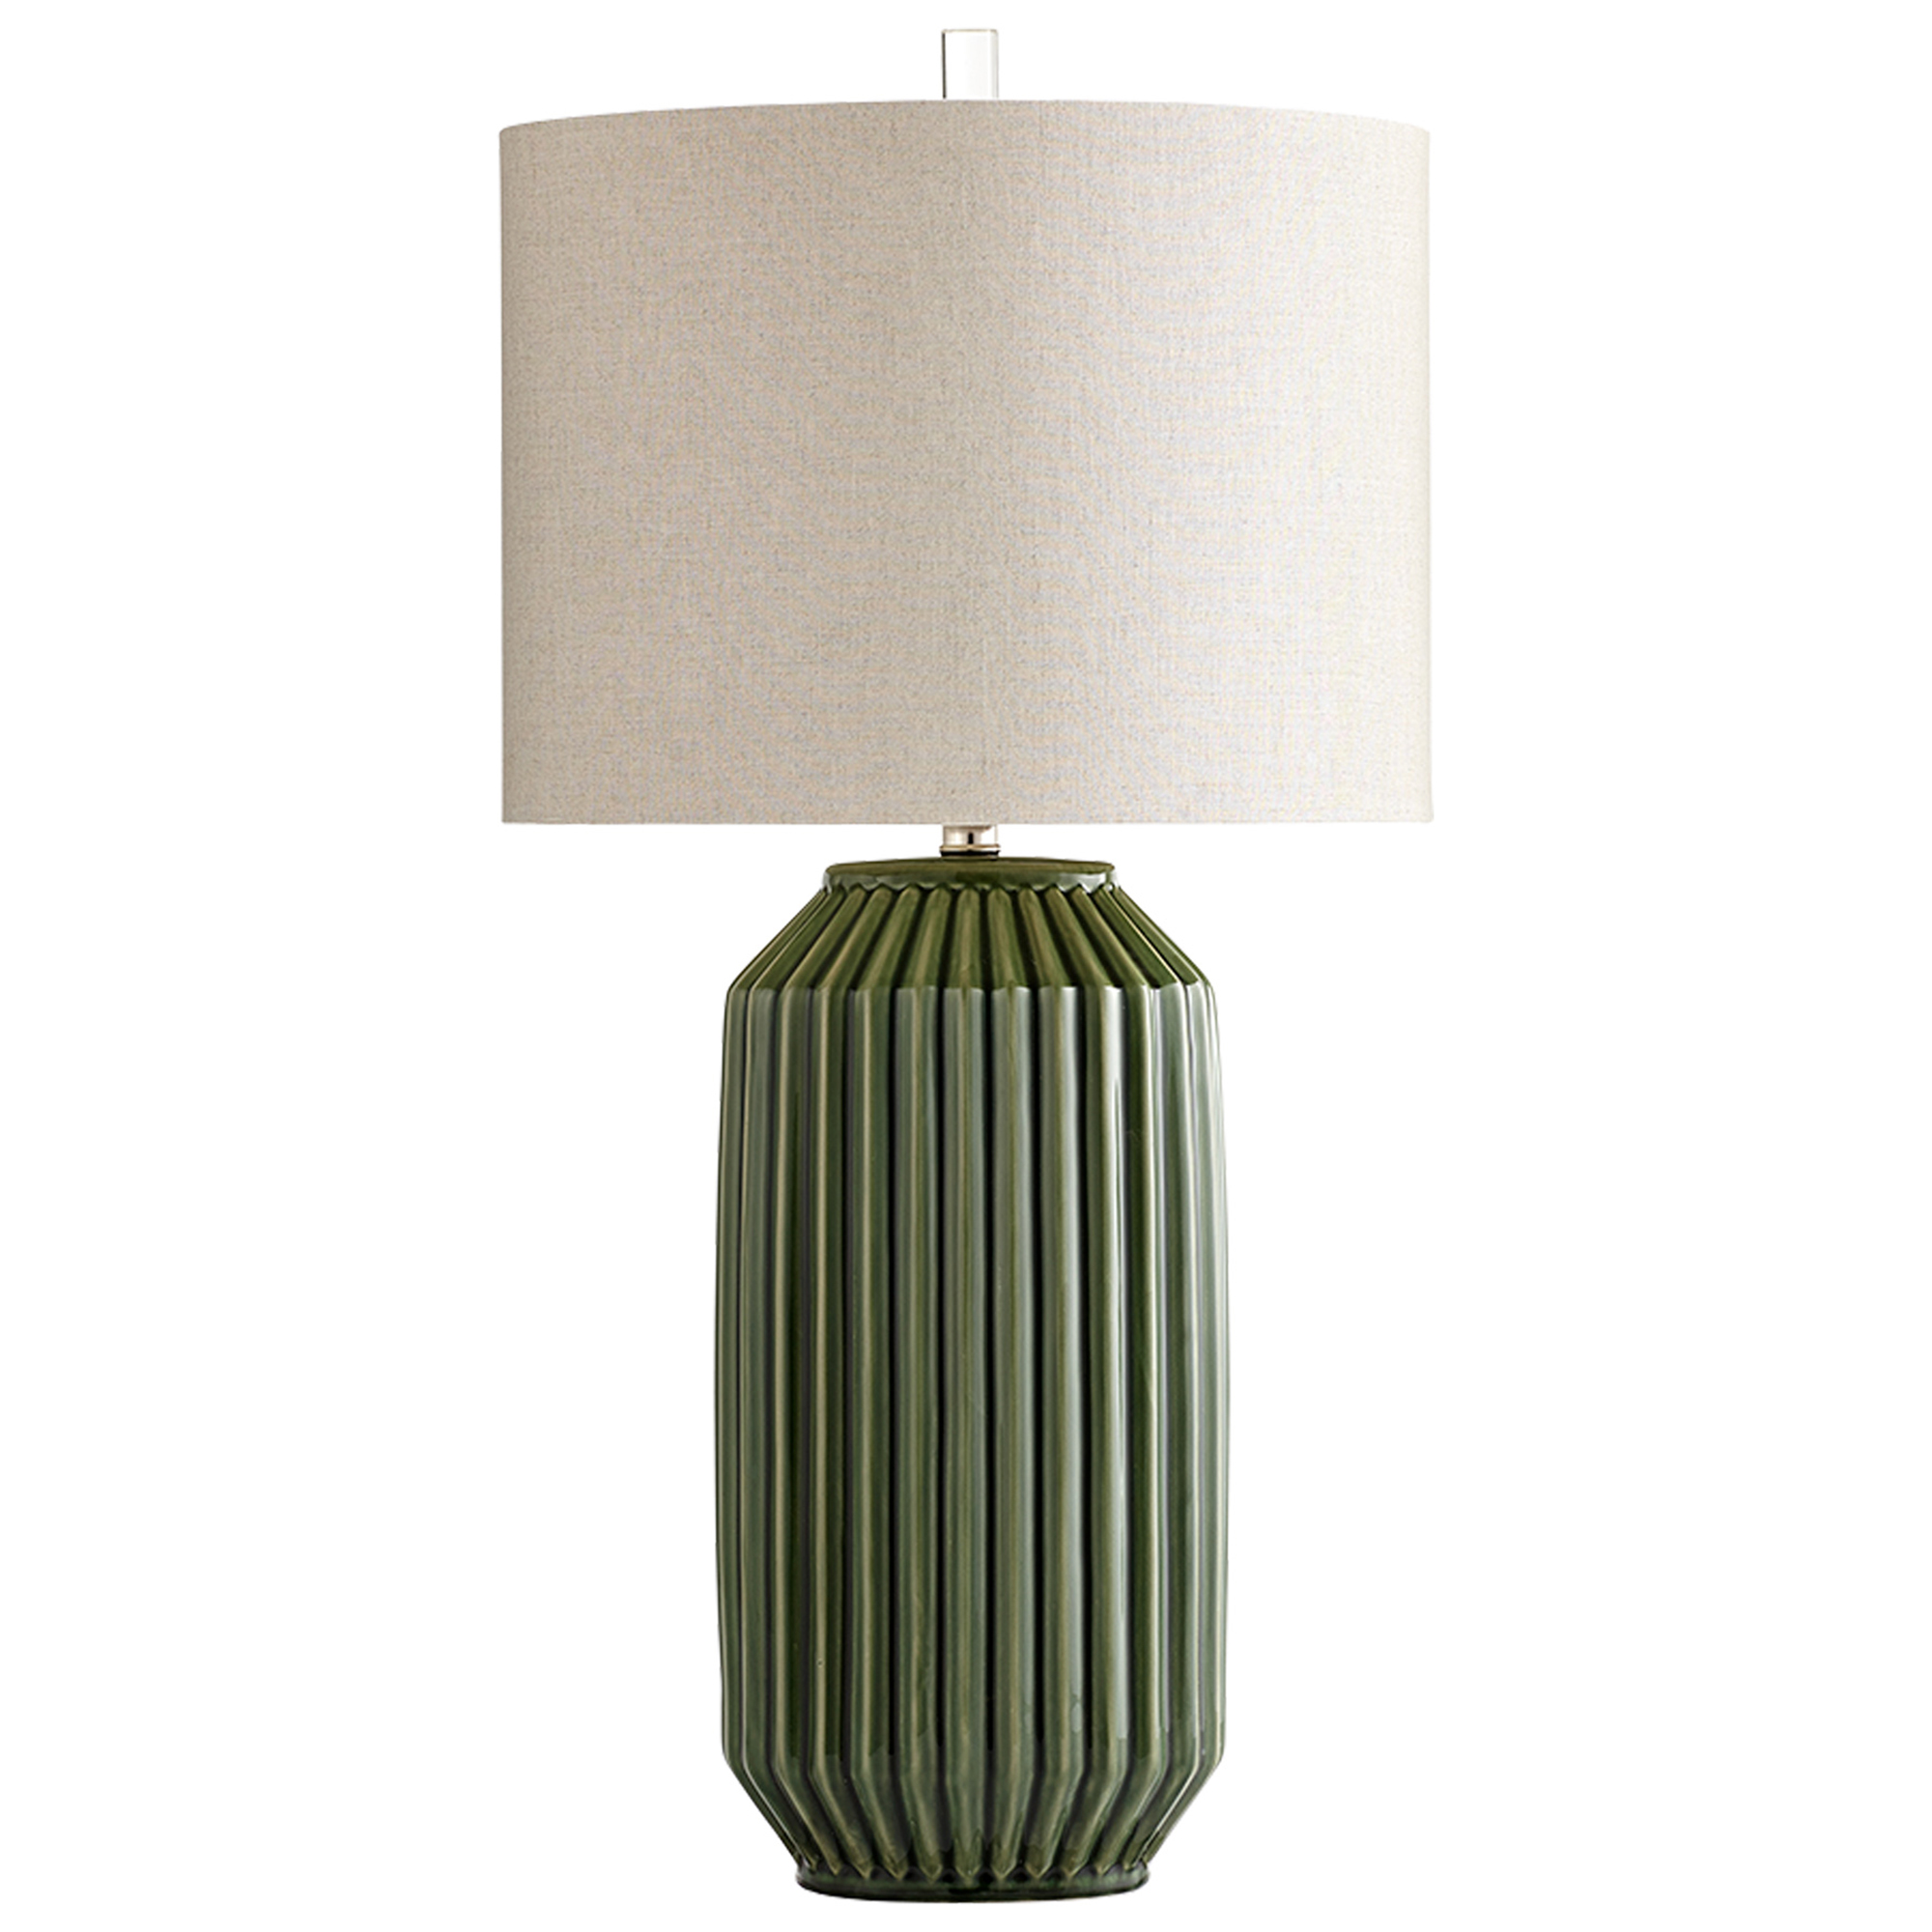 Details About Ribbed Green Ceramic Table Lamp Mid Century Modern With Shade